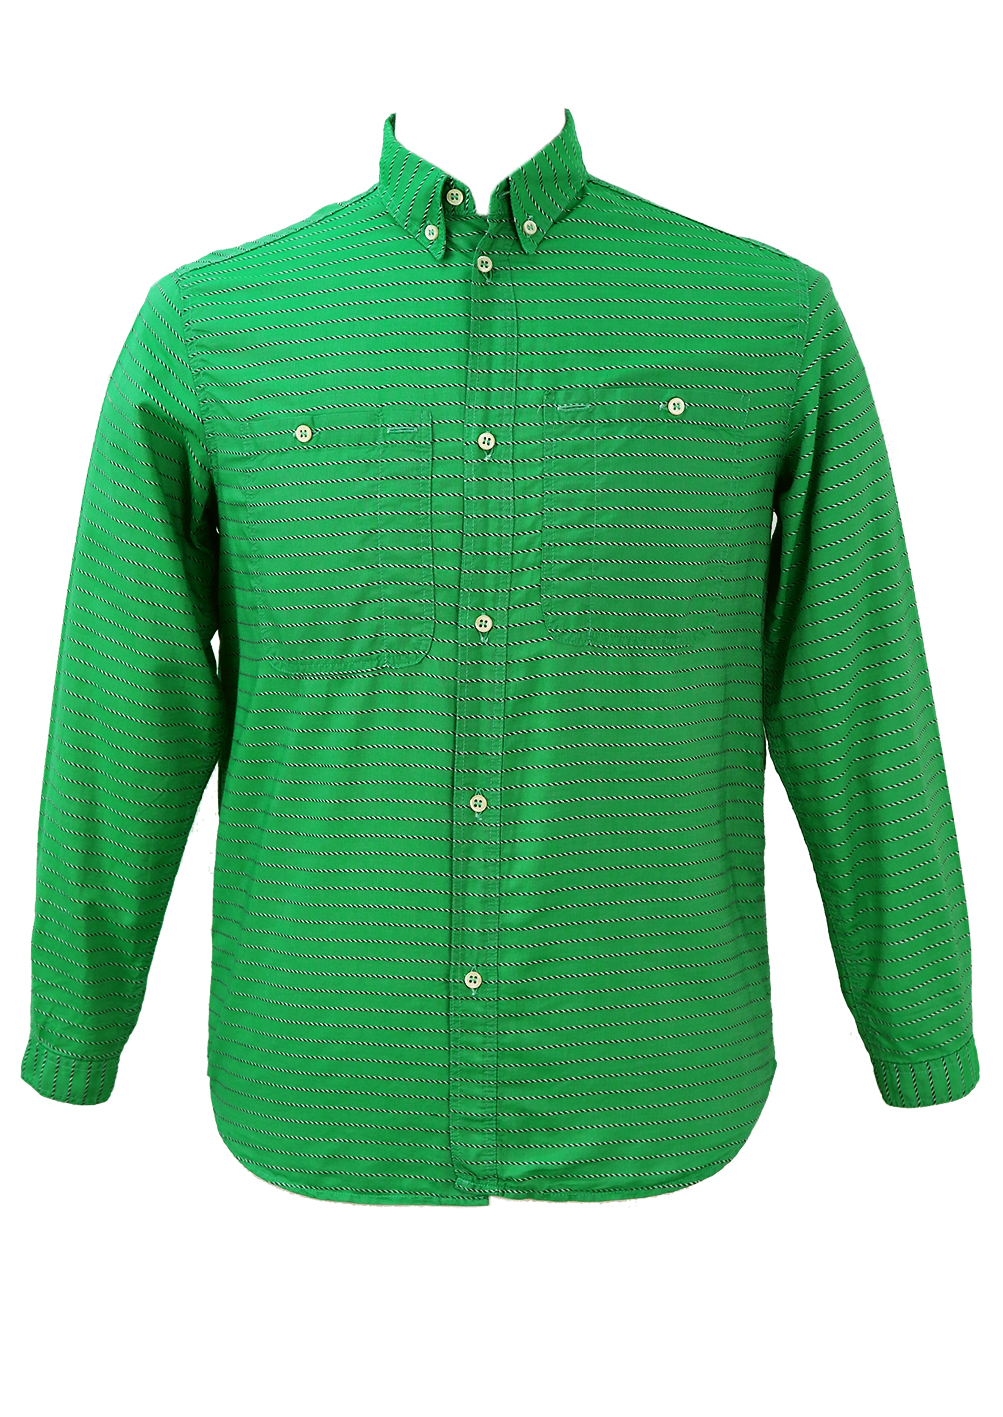 Emerald green shirt with green white embroidered stripes Emerald green mens dress shirt